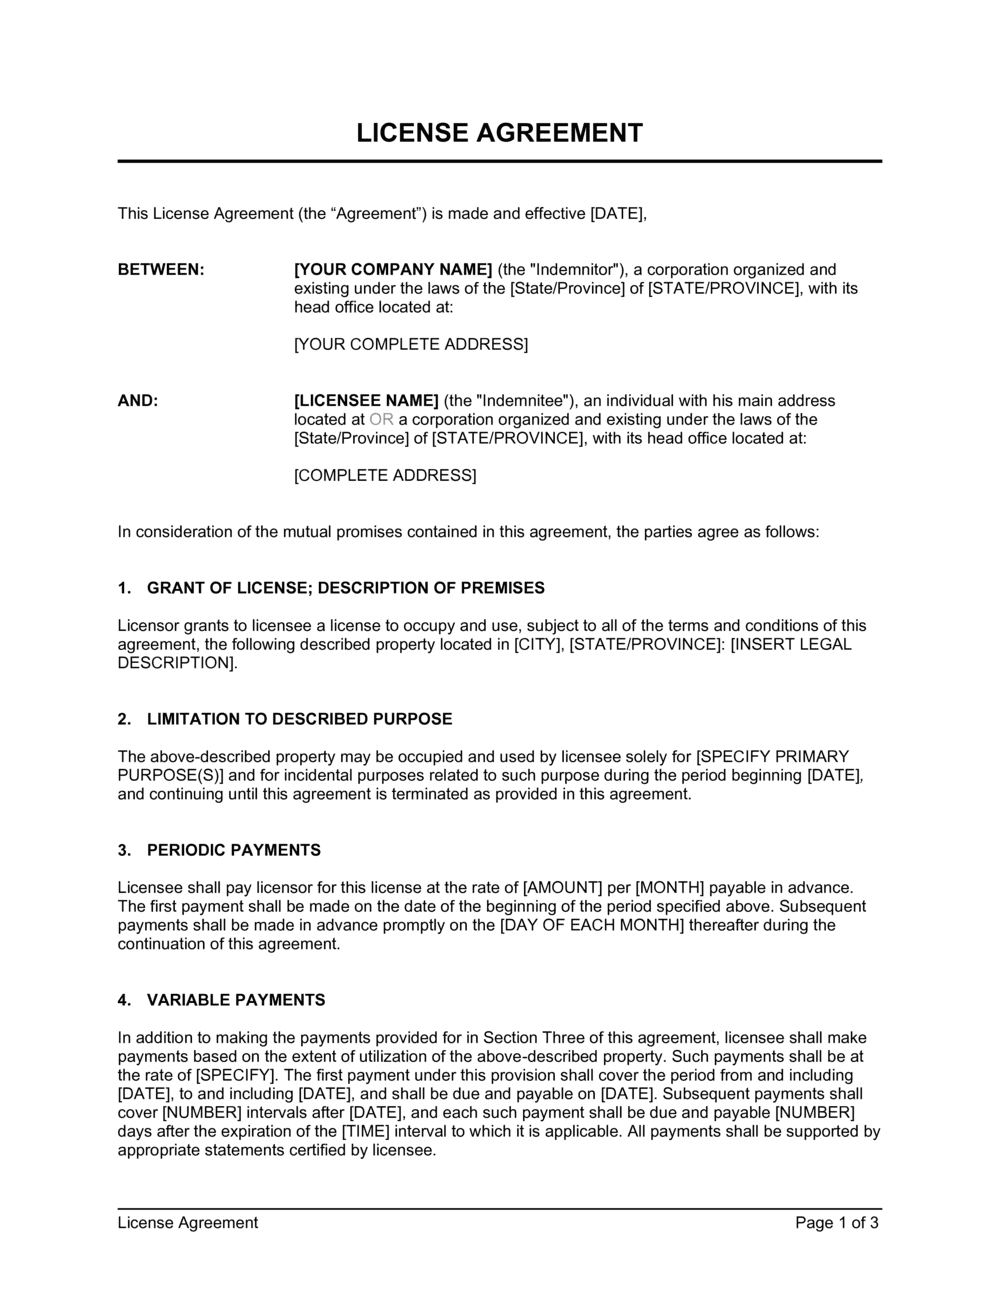 Business-in-a-Box's License Agreement Template